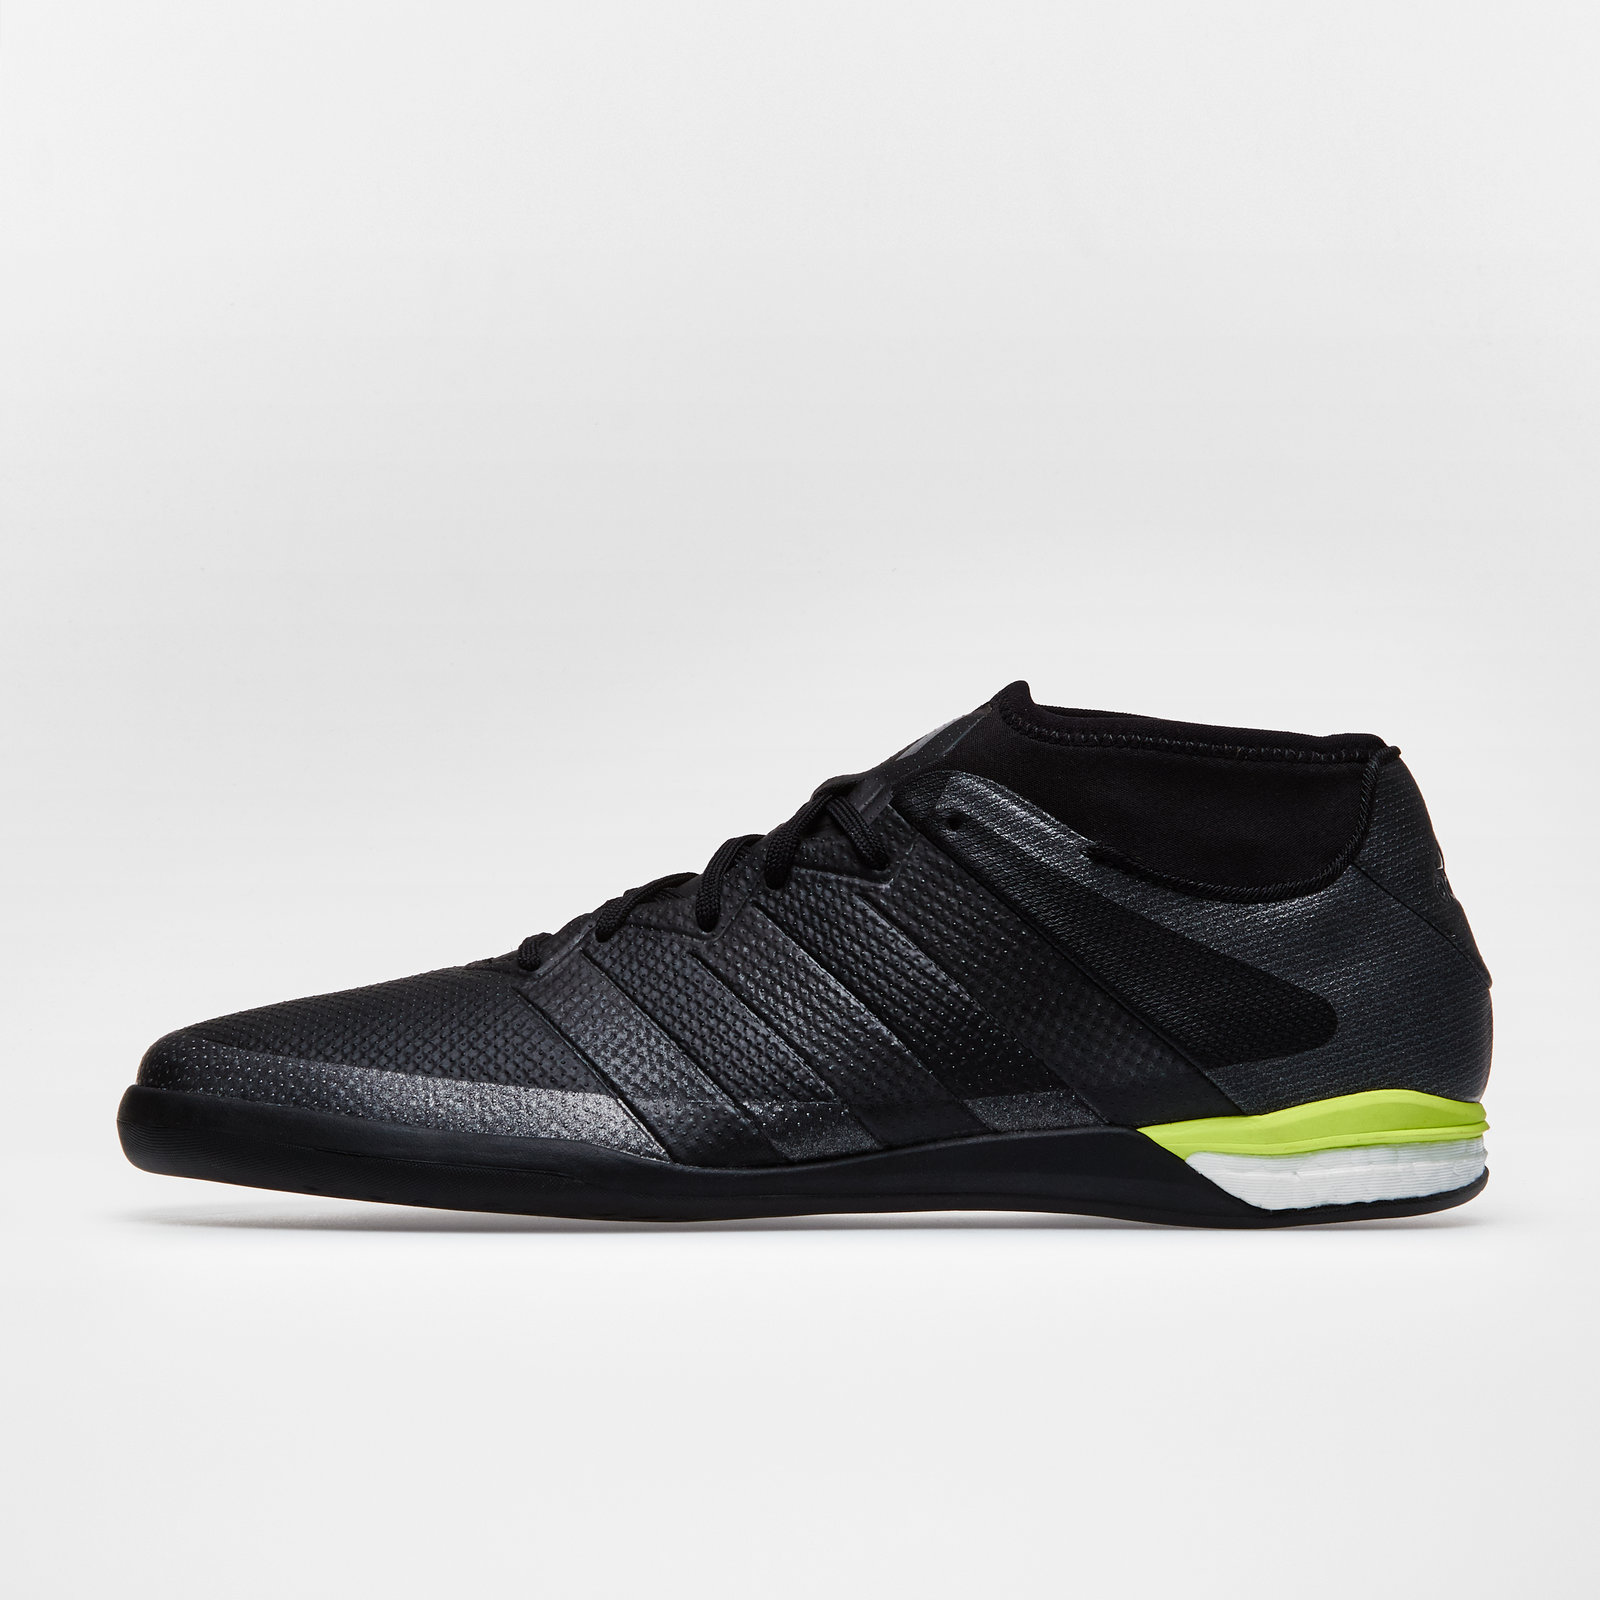 Image of Ace 16.1 Street Football Trainers